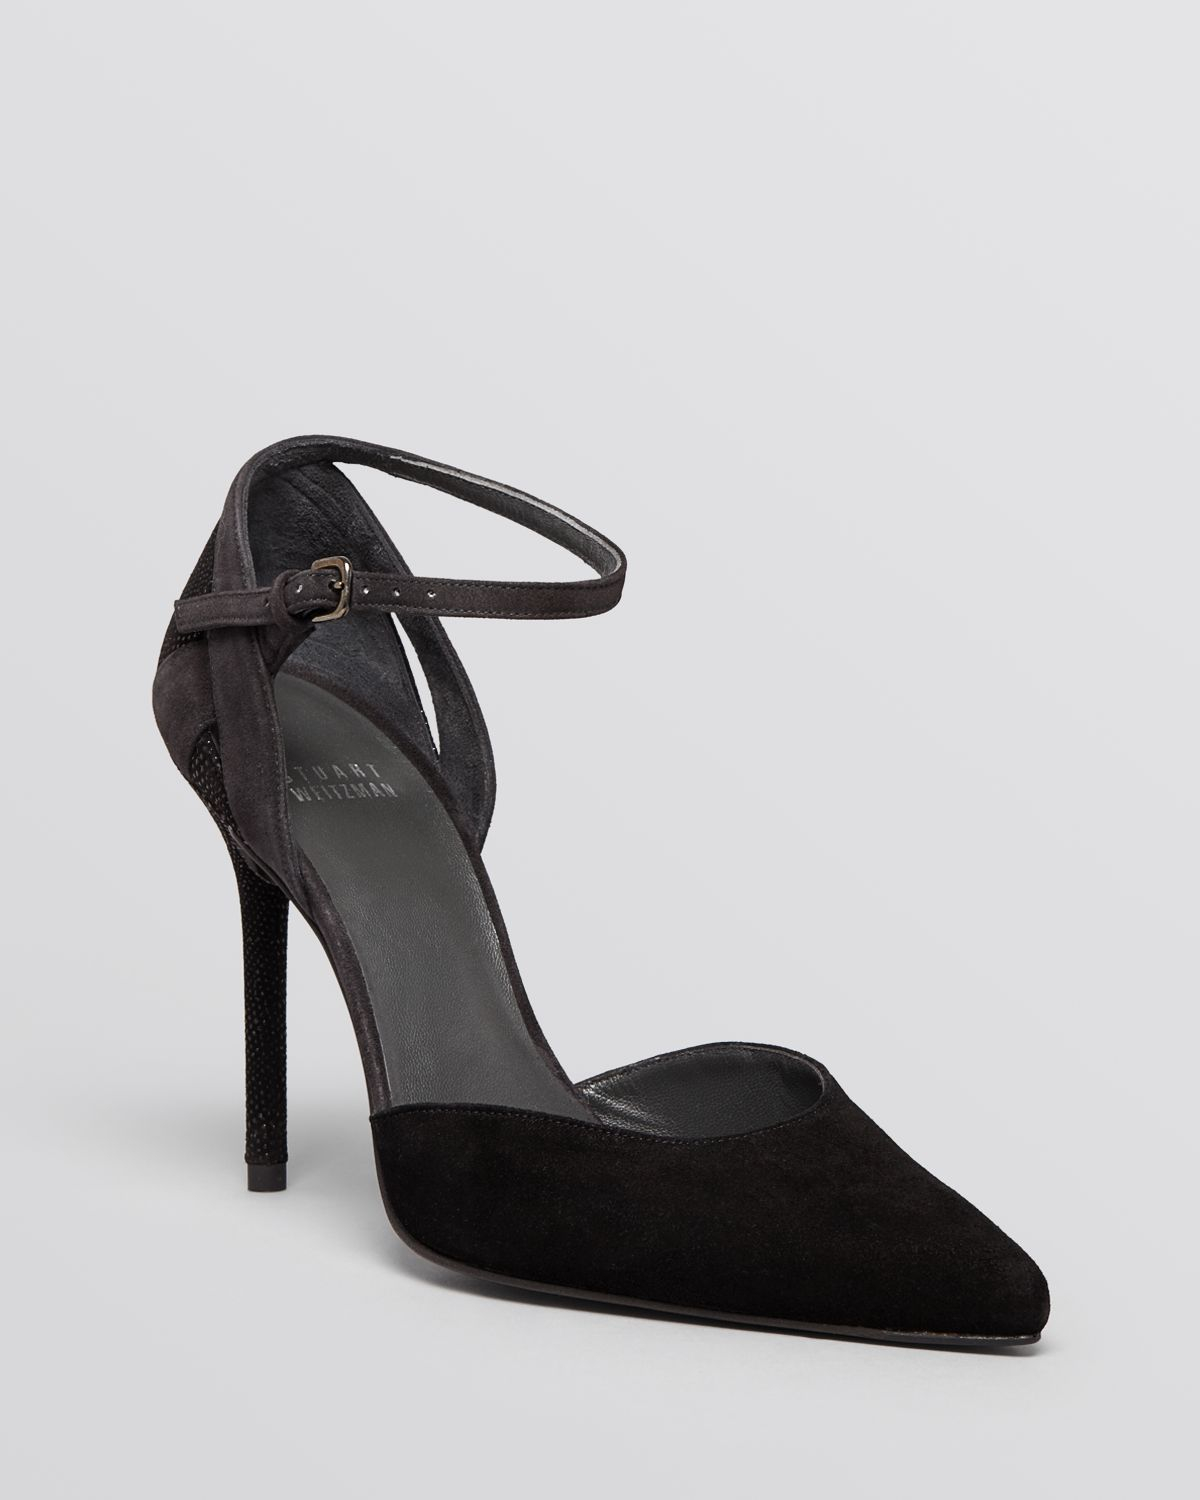 01f31fbad01 Stuart Weitzman Pointed Toe D'Orsay Ankle Strap Pumps - Xfactor High ...